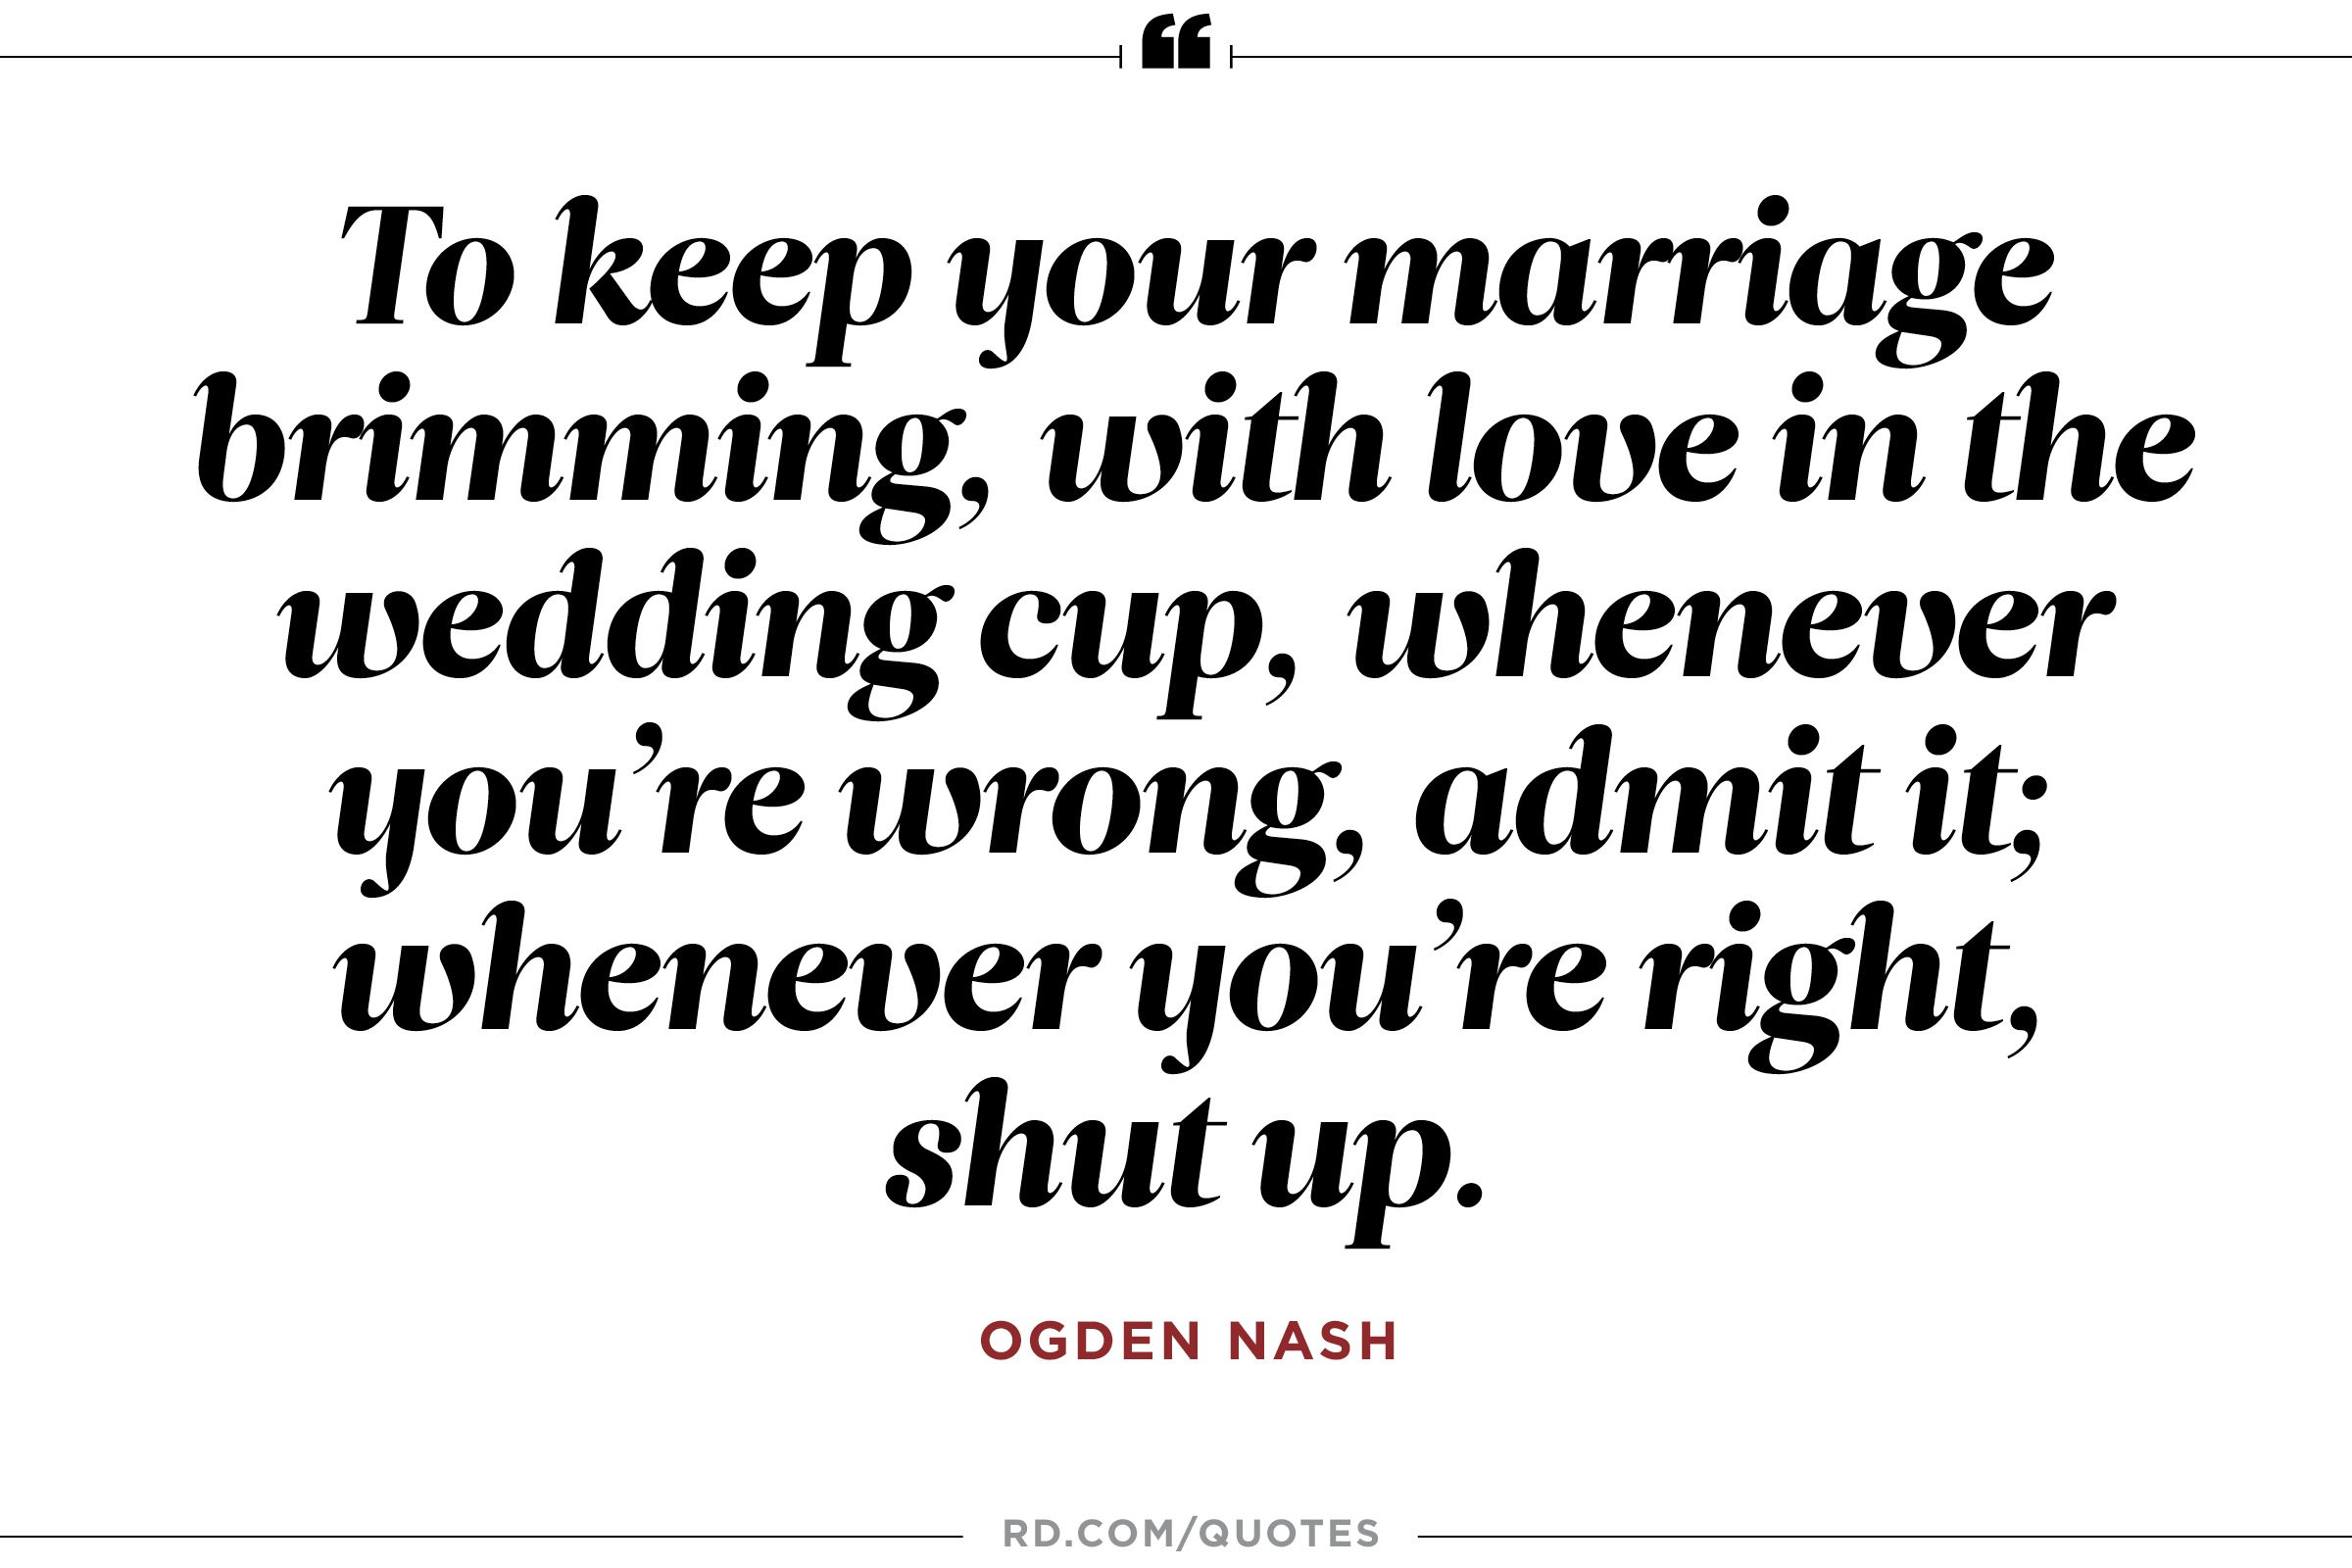 Quotes About Marriage  8 Funny Marriage Quotes From the Greatest Wits of All Time